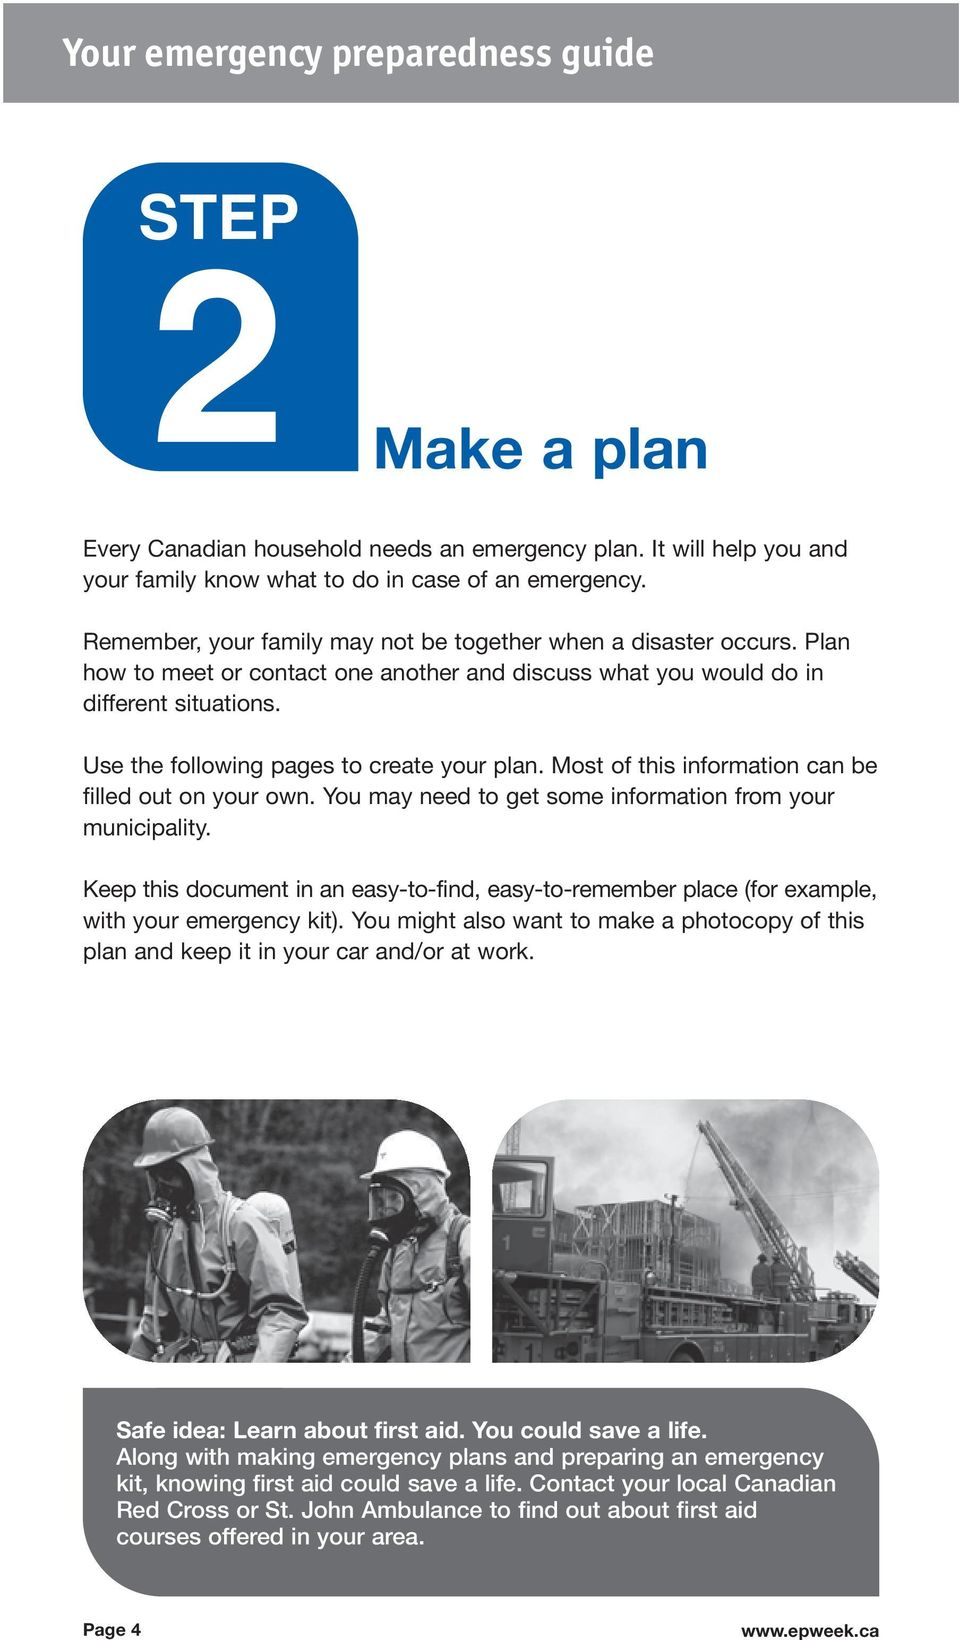 Use the following pages to create your plan. Most of this information can be filled out on your own. You may need to get some information from your municipality.